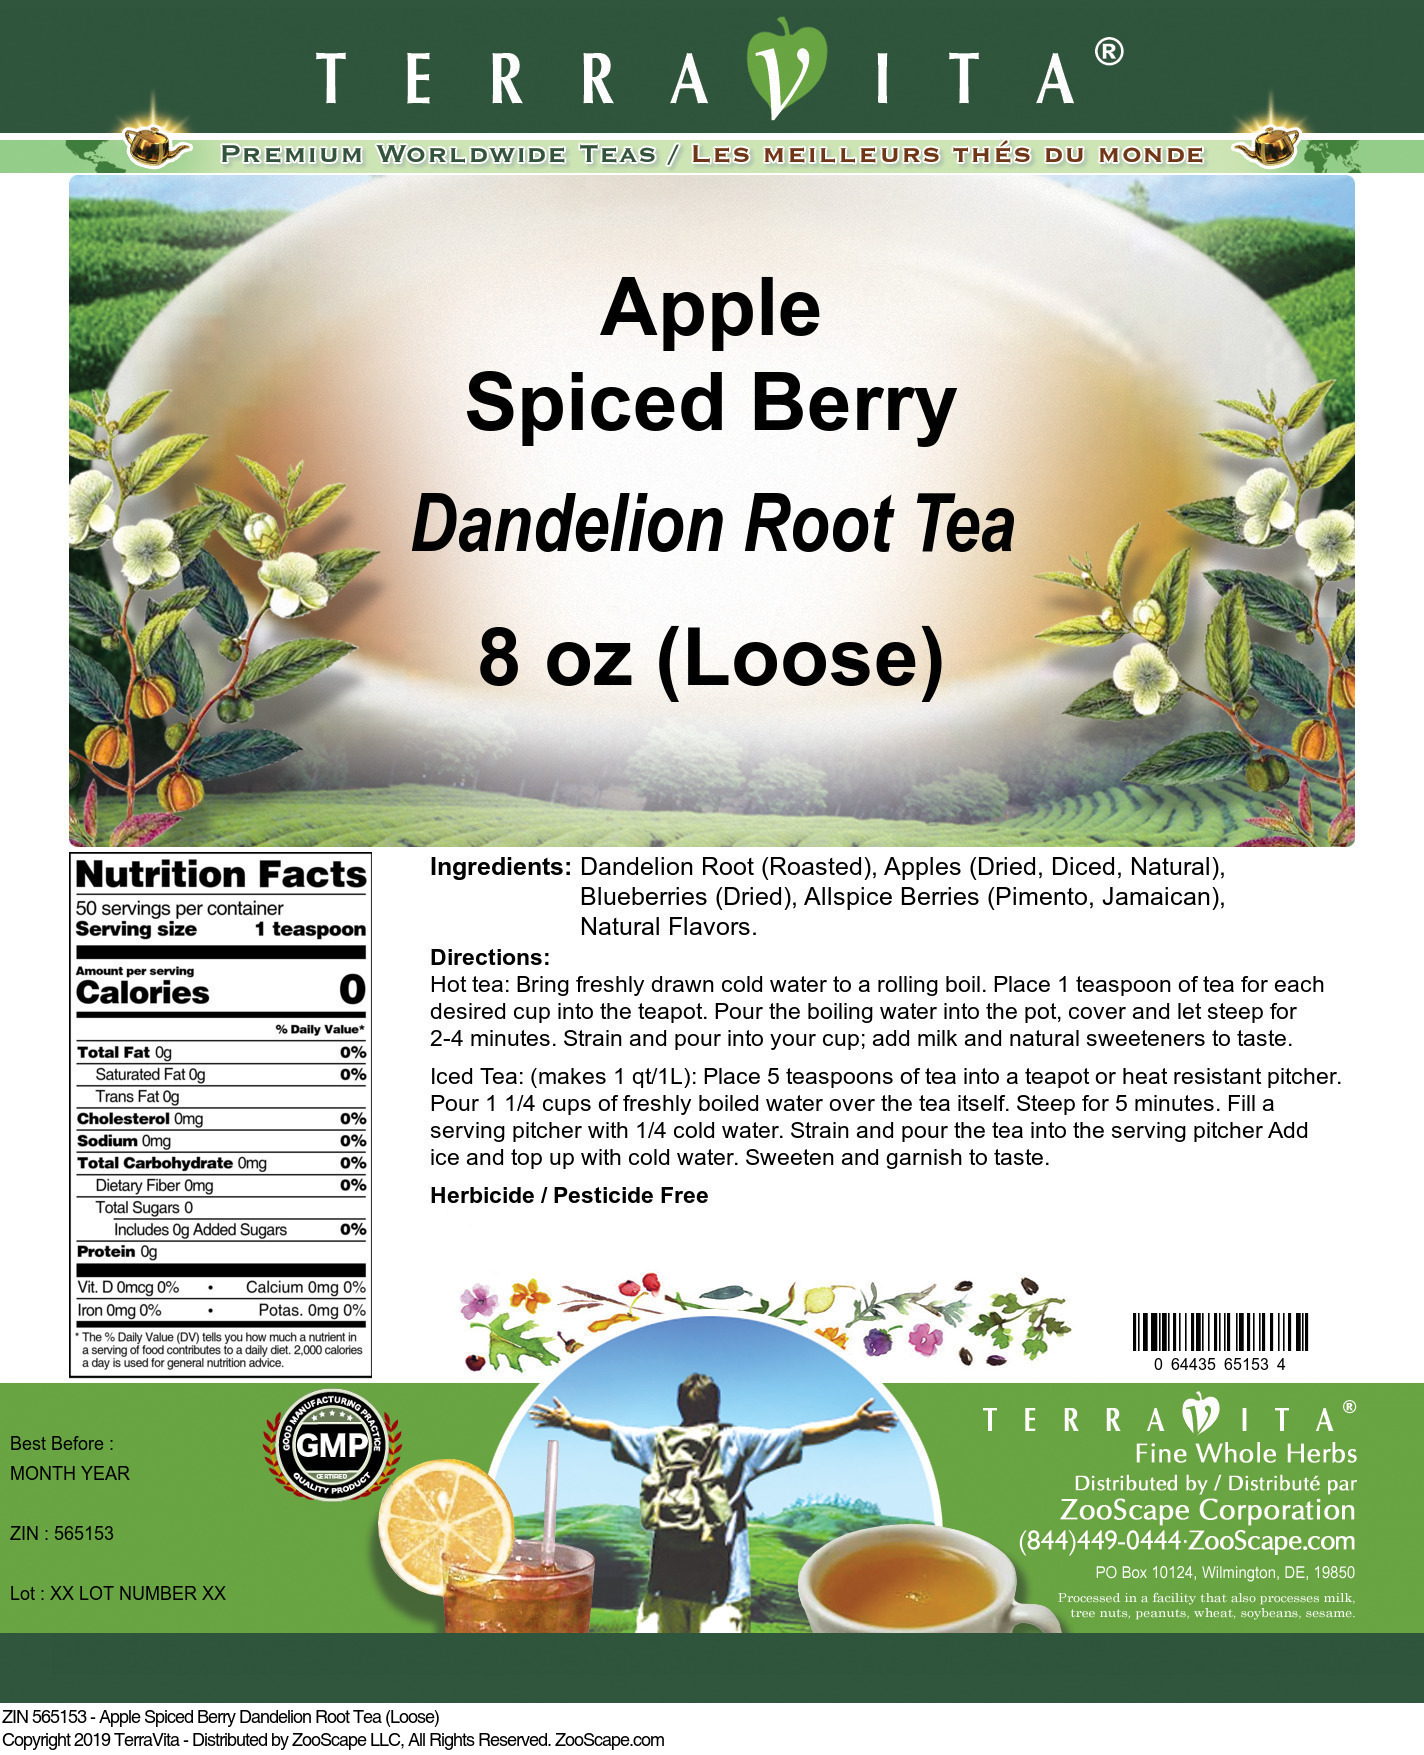 Apple Spiced Berry Dandelion Root